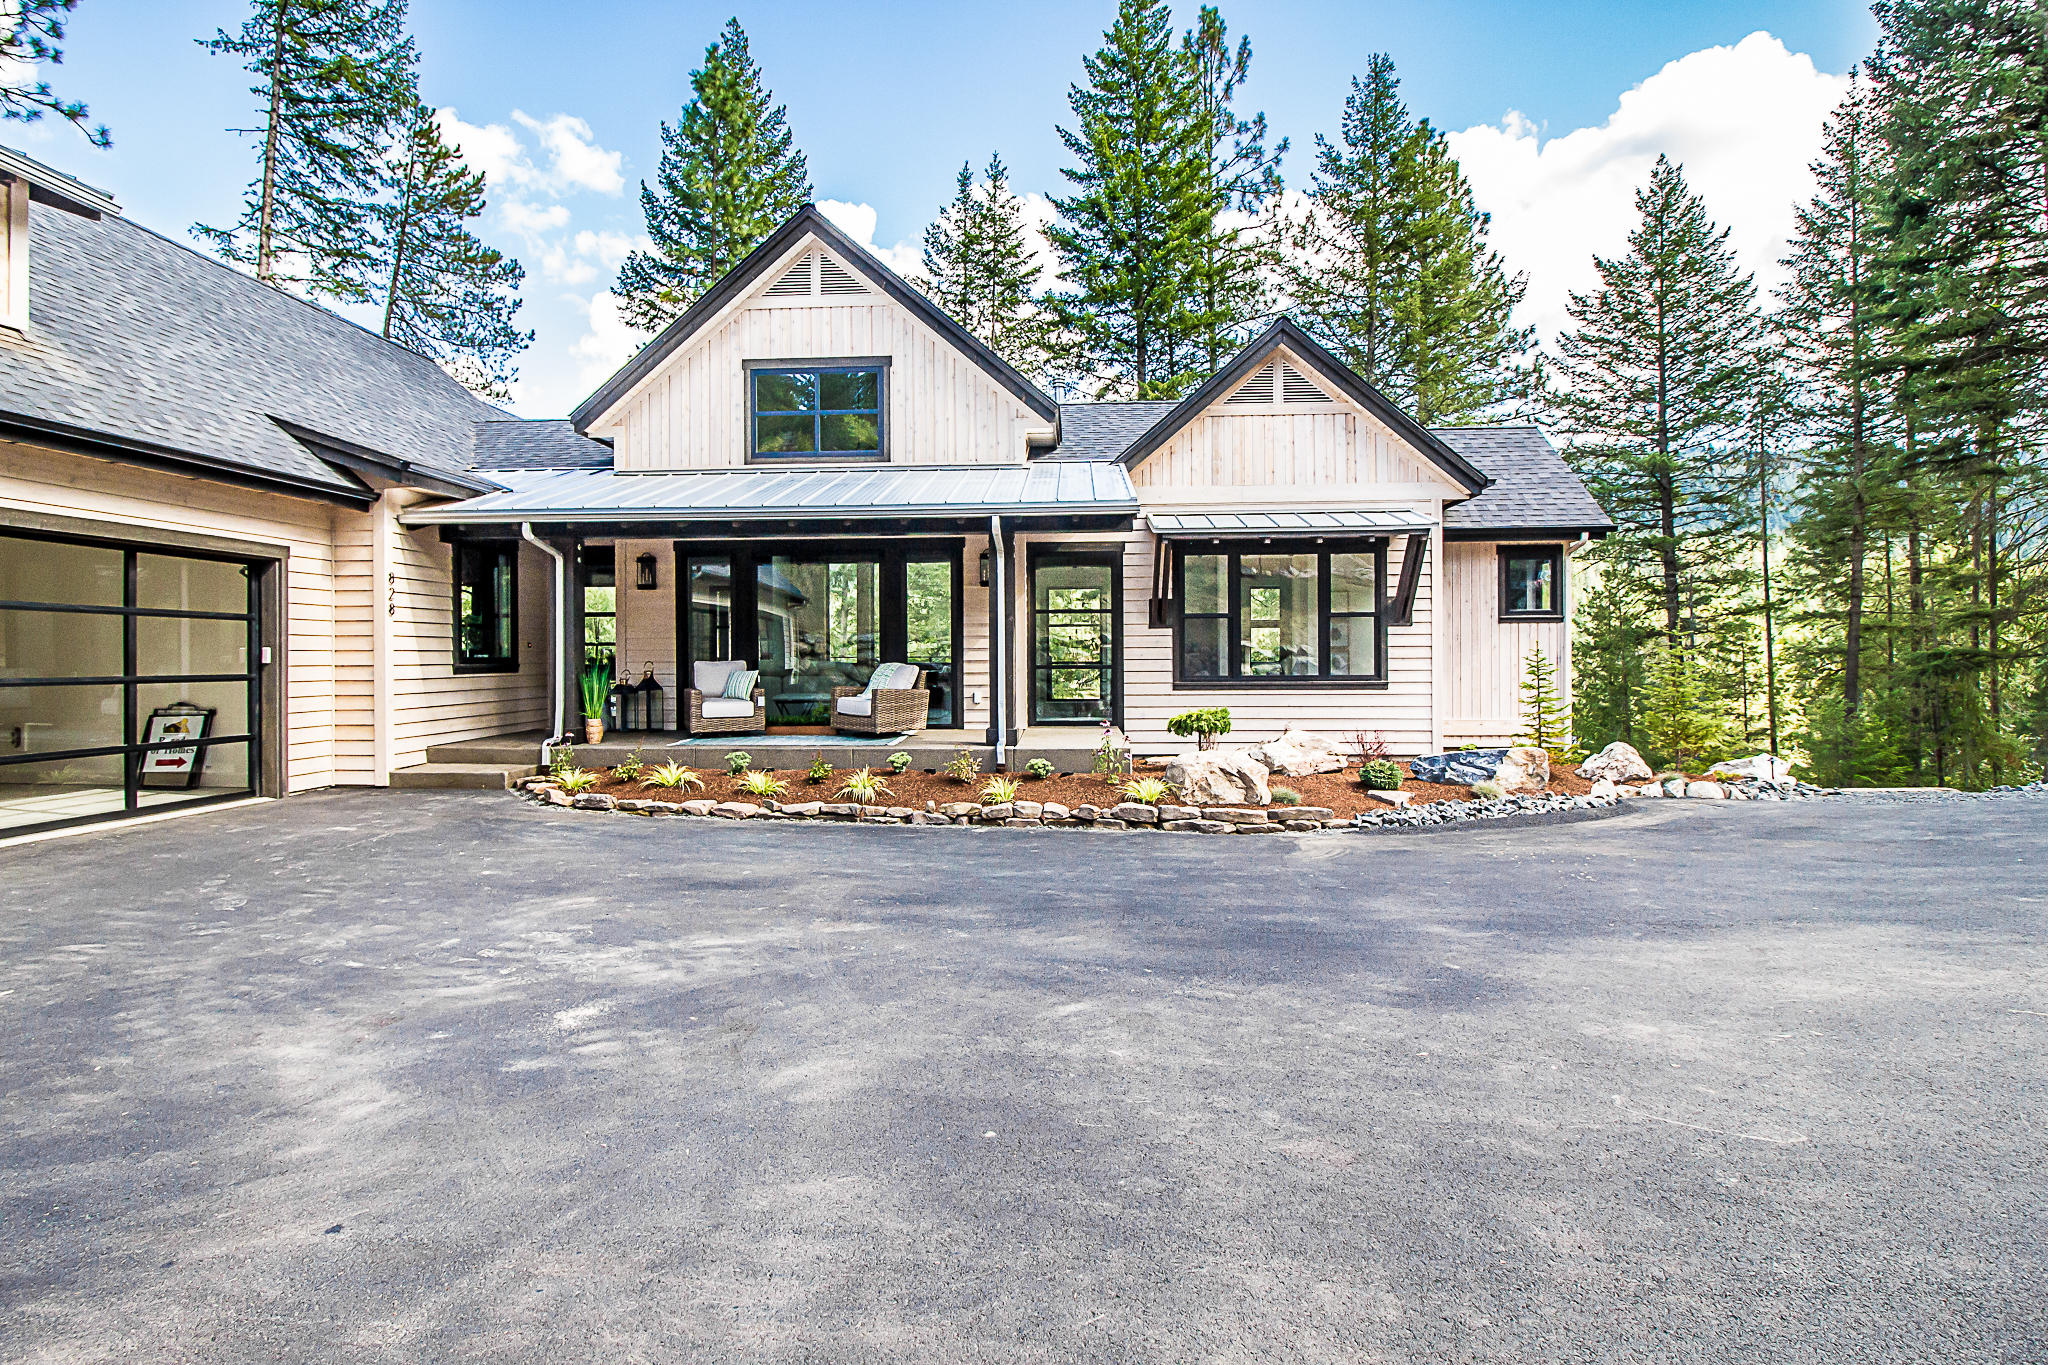 photo of LotC Lakeview Heights Dr Coeur d'Alene Idaho 83814